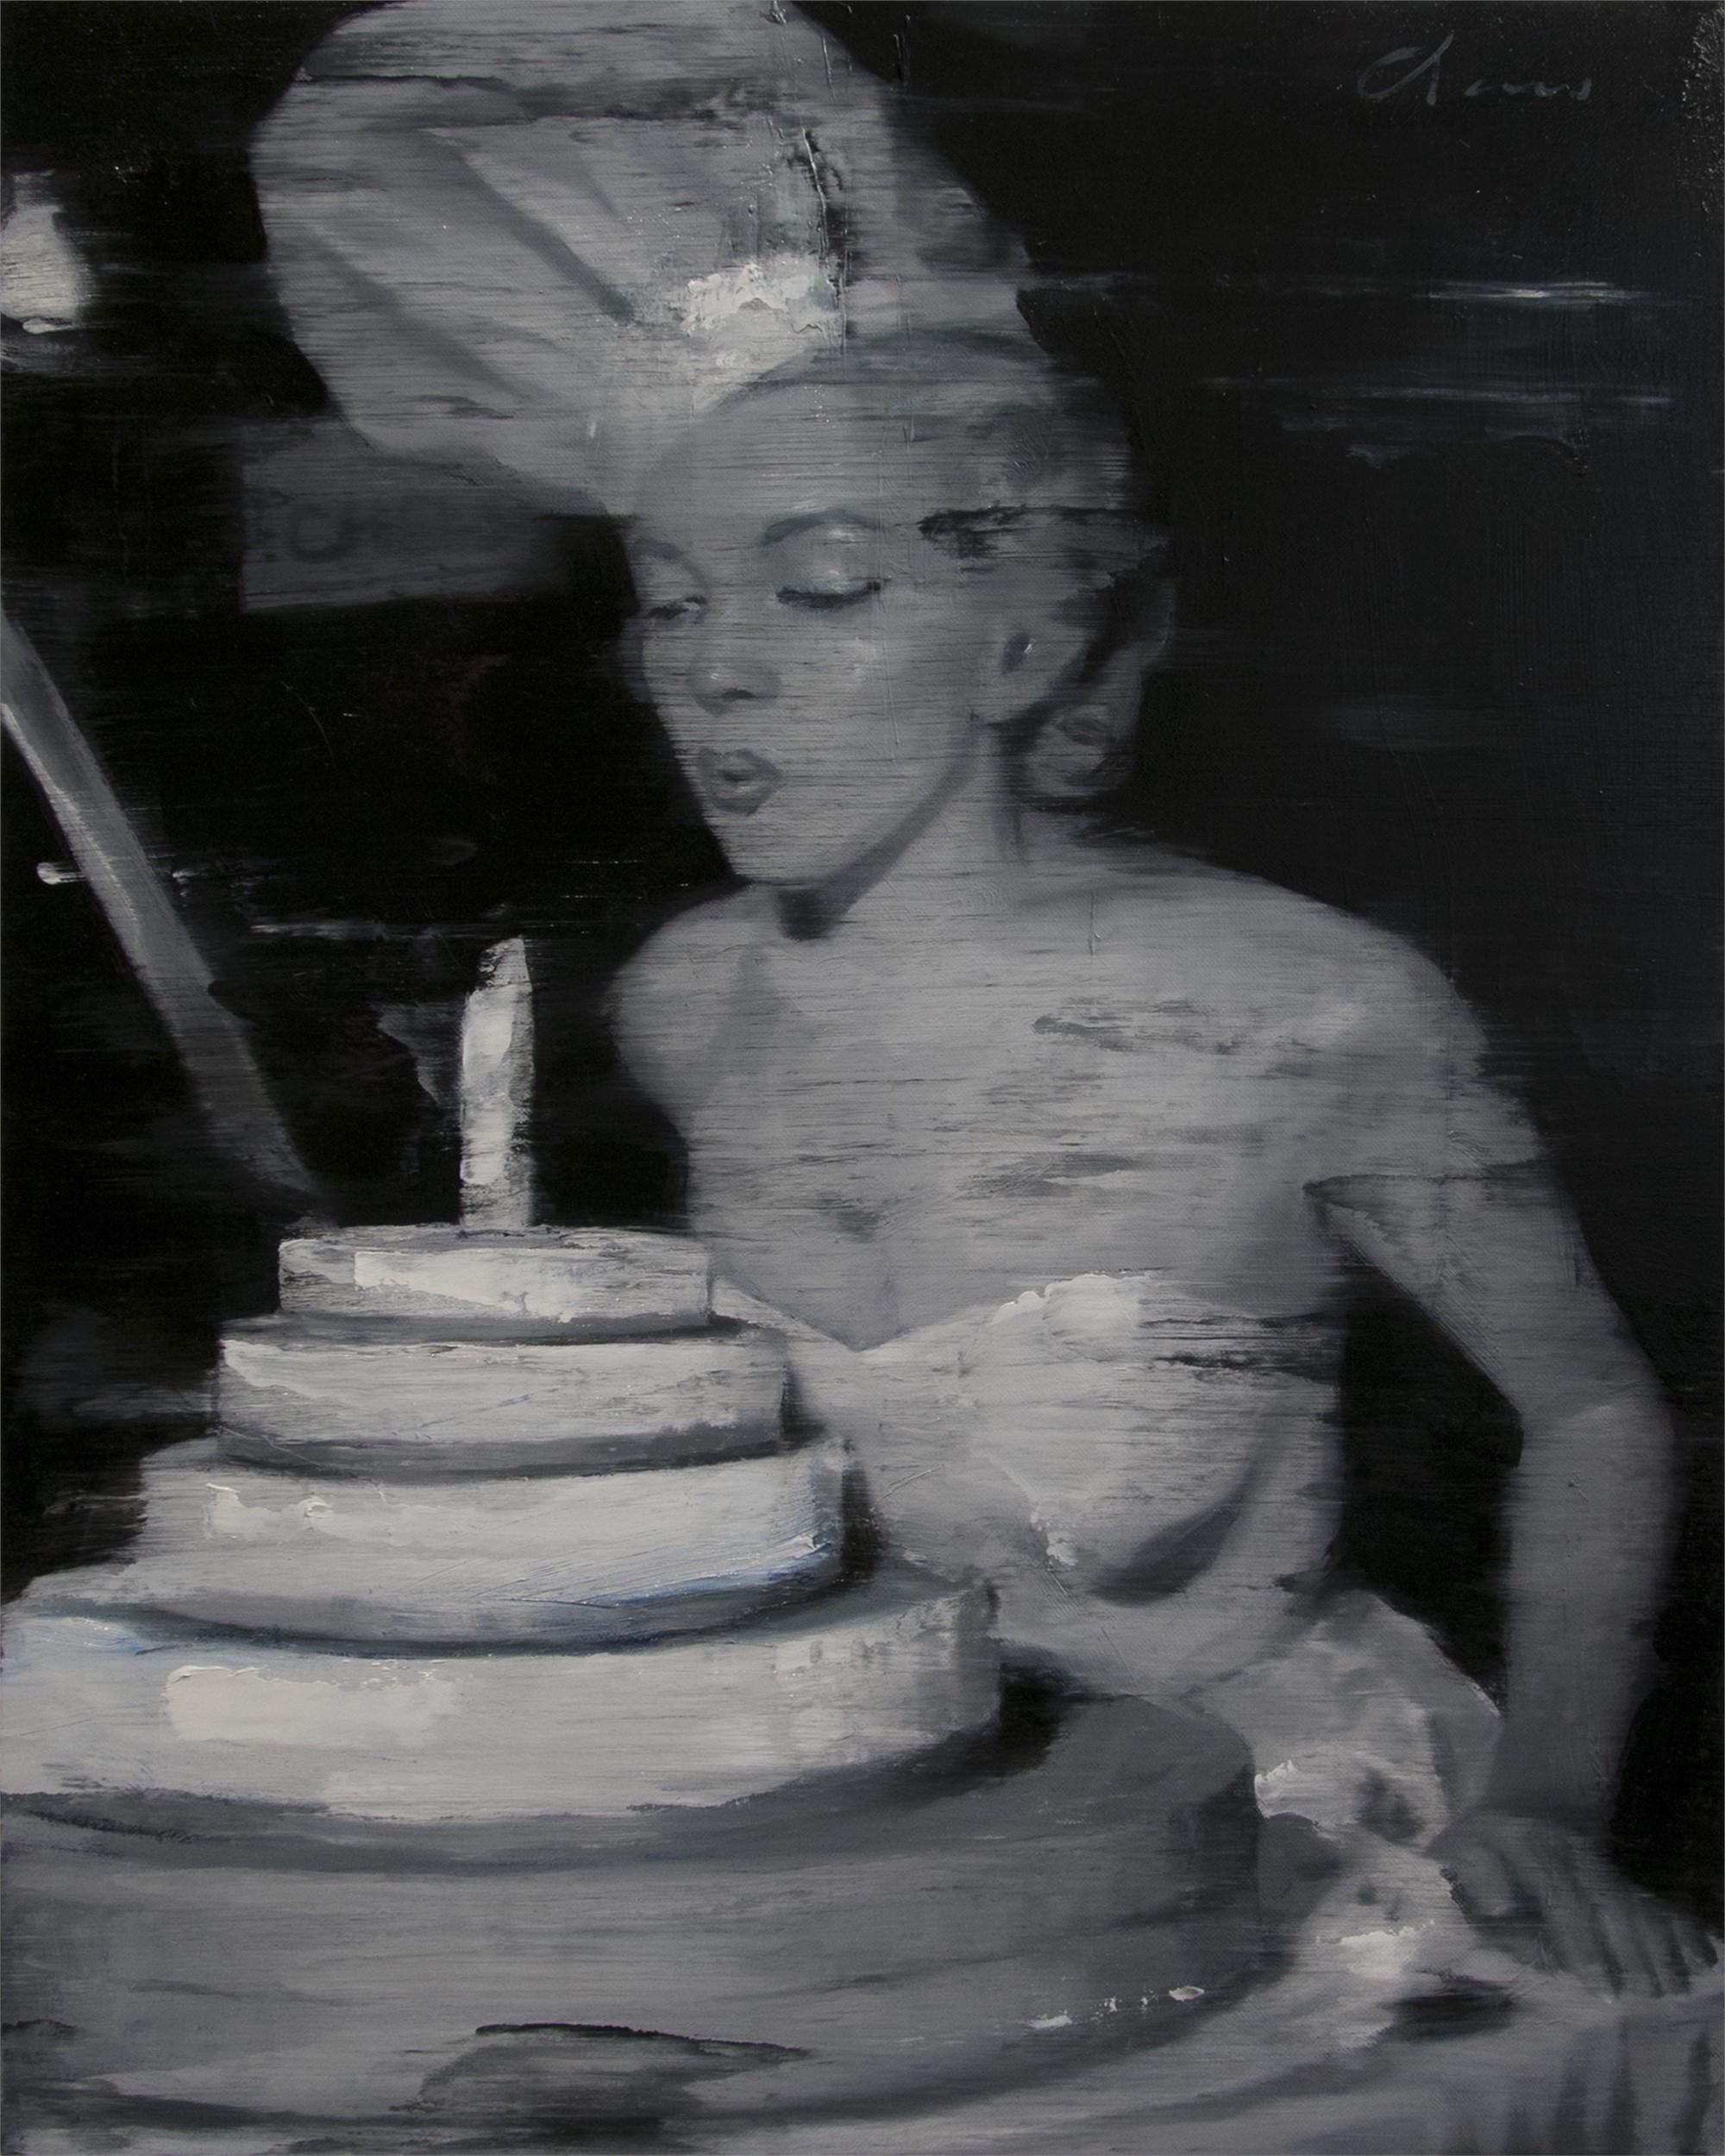 The Cake by Vincent Xeus